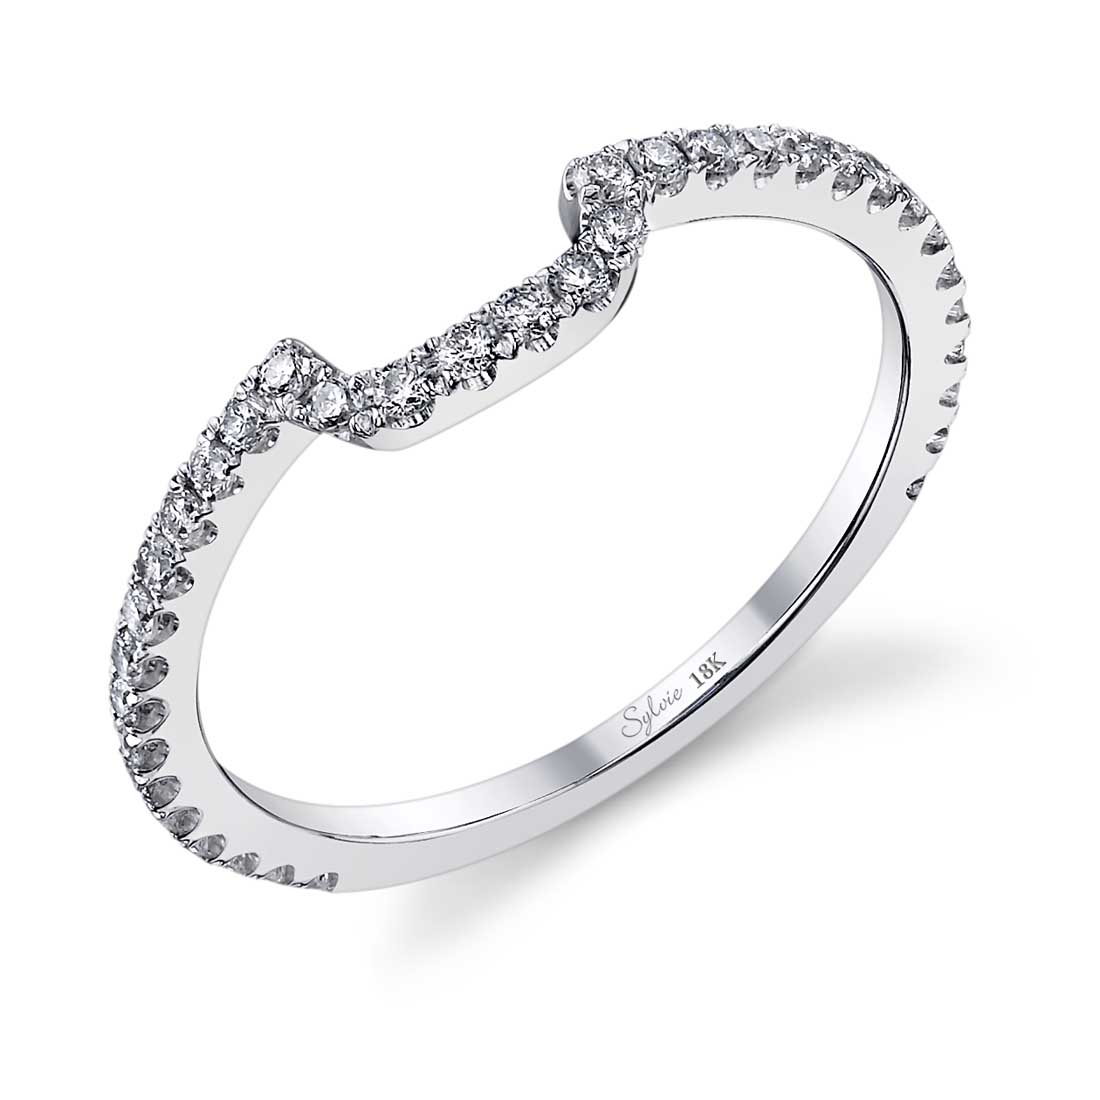 Profile of Cushion Cut Engagement Ring with Halo